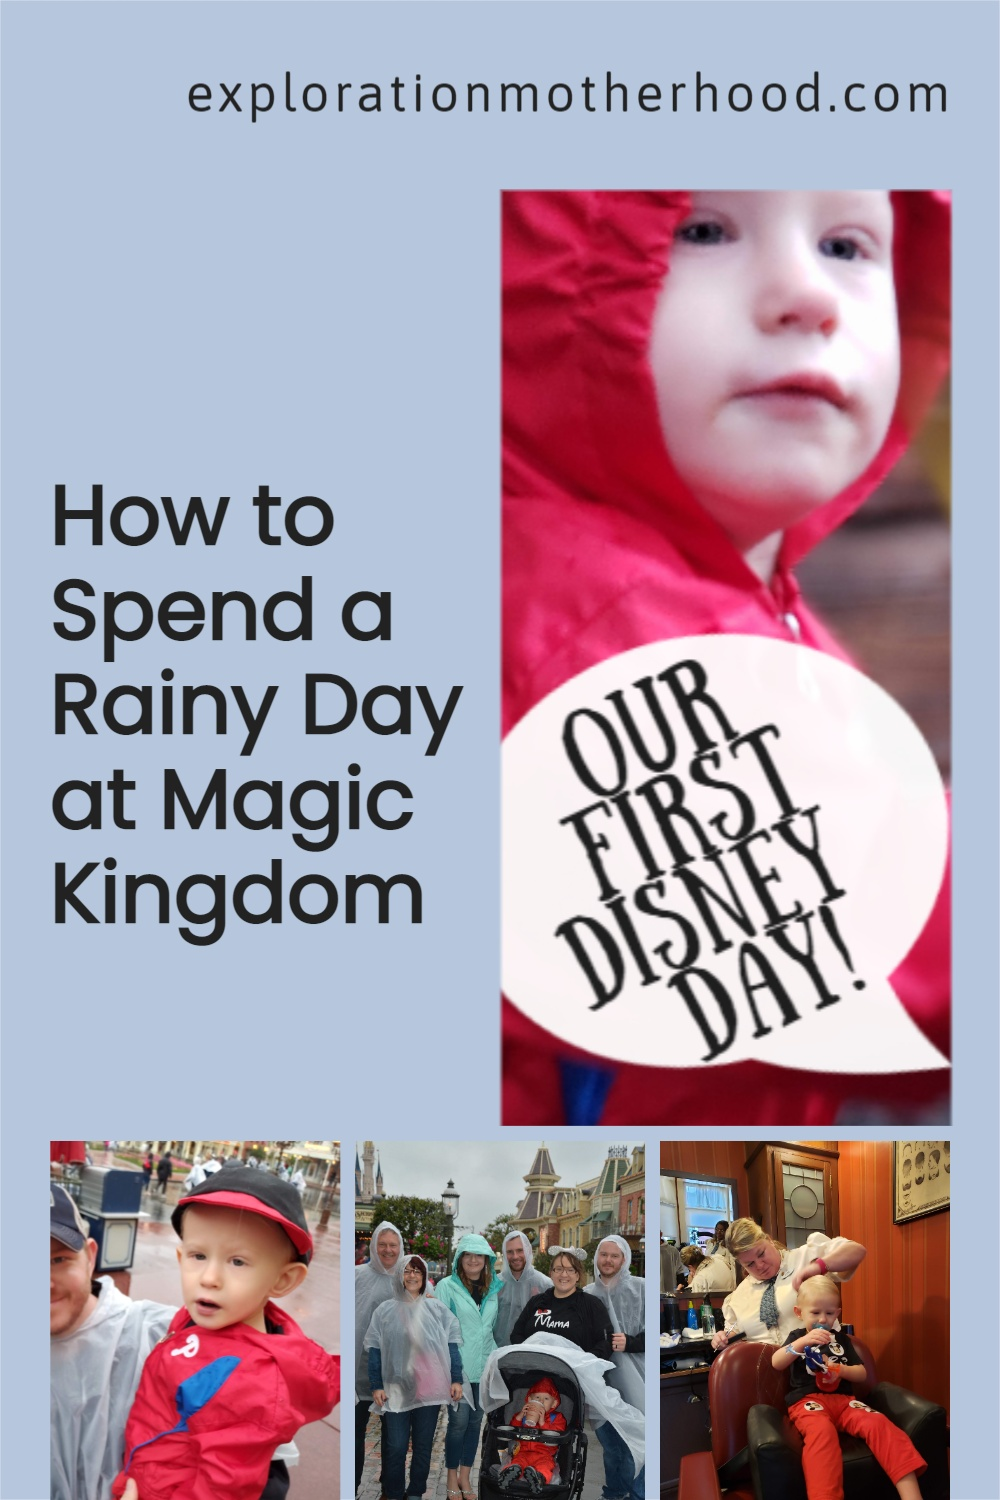 How to Spend a Rainy Day at Magic Kingdom